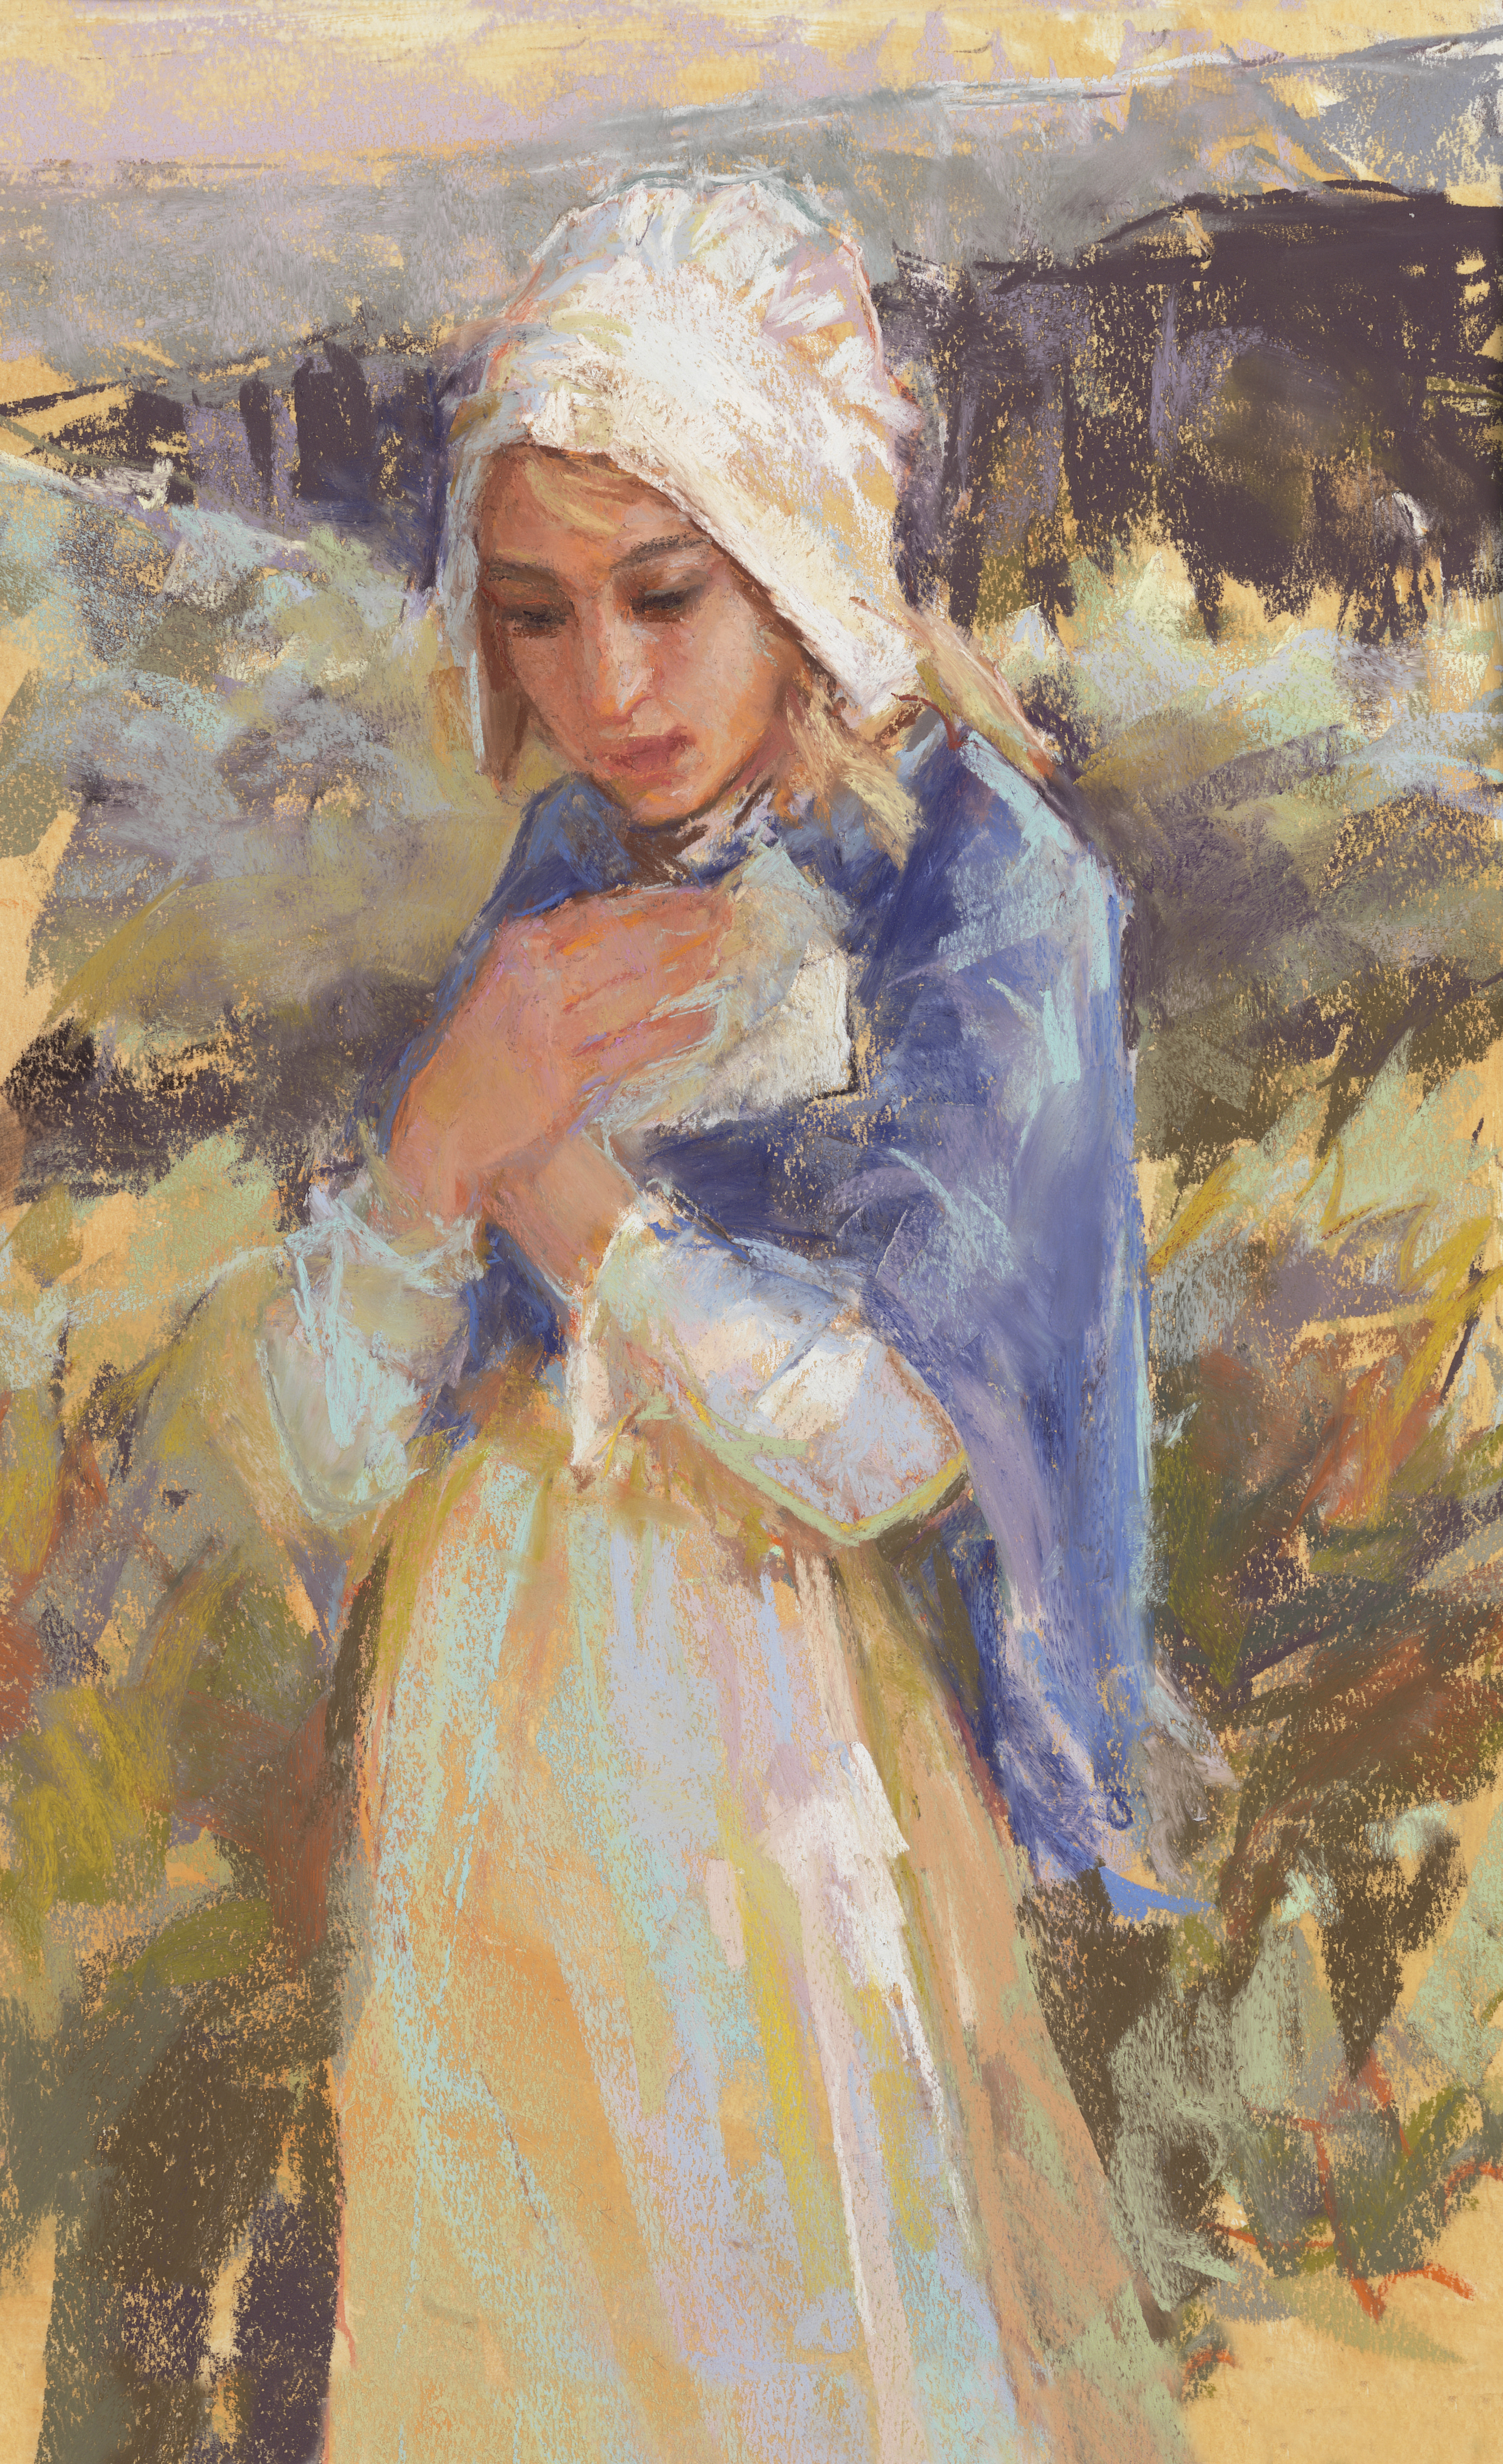 A painting of a pioneer girl by Julie Rogers.